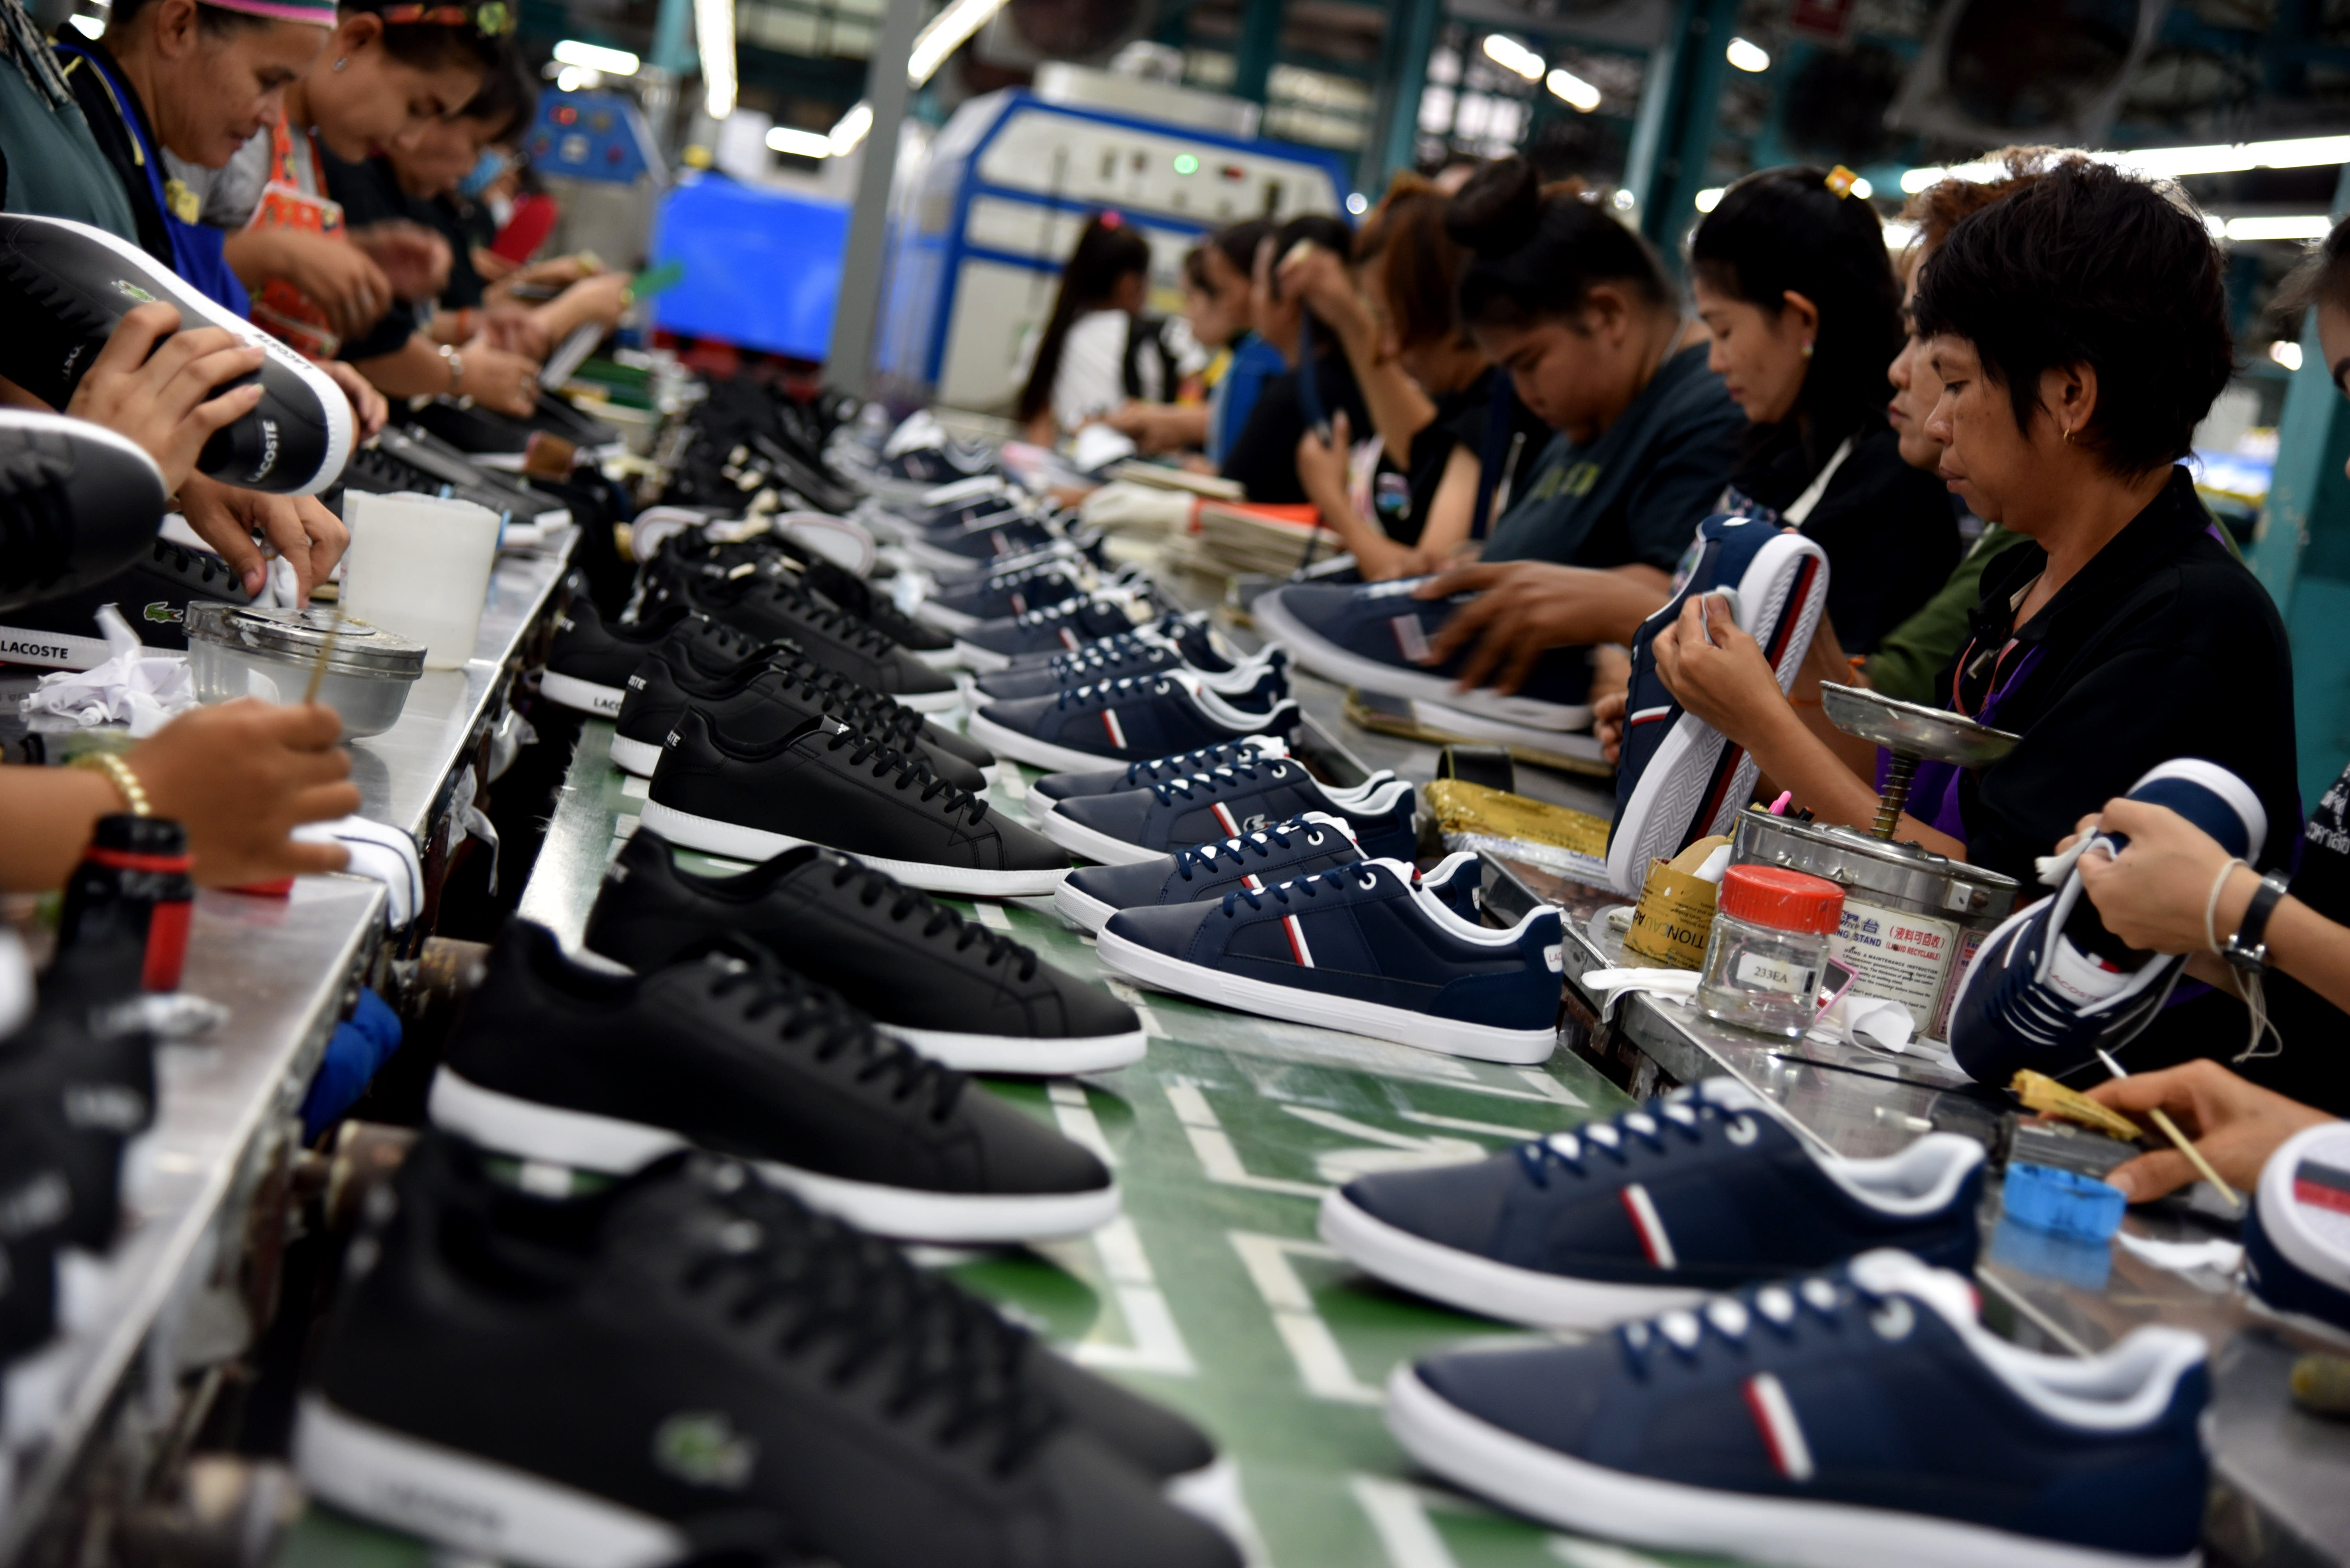 59142d82ce687_innovation footwear shoe factory 3.JPG